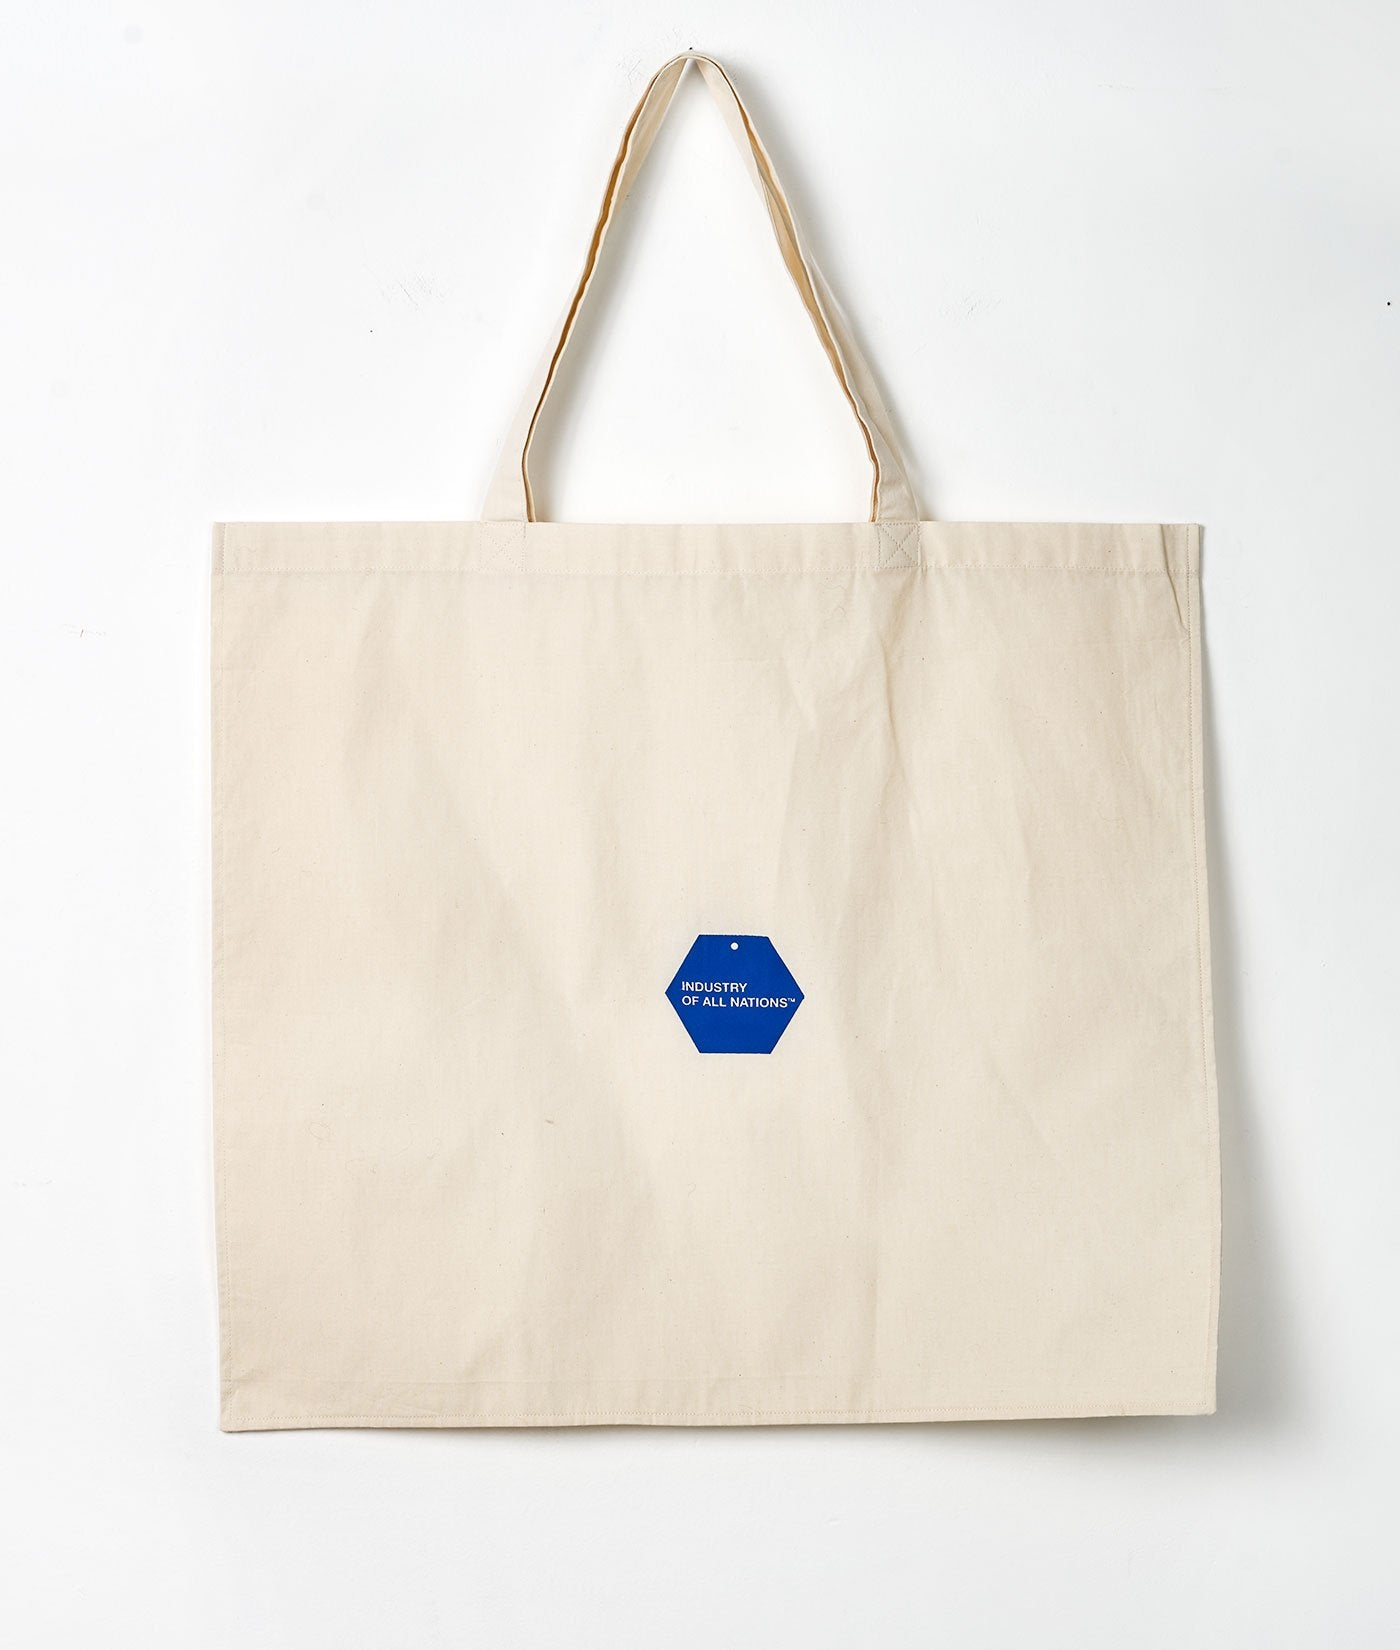 Industry of All Nations Sustainable Organic Cotton Tote Bag Large